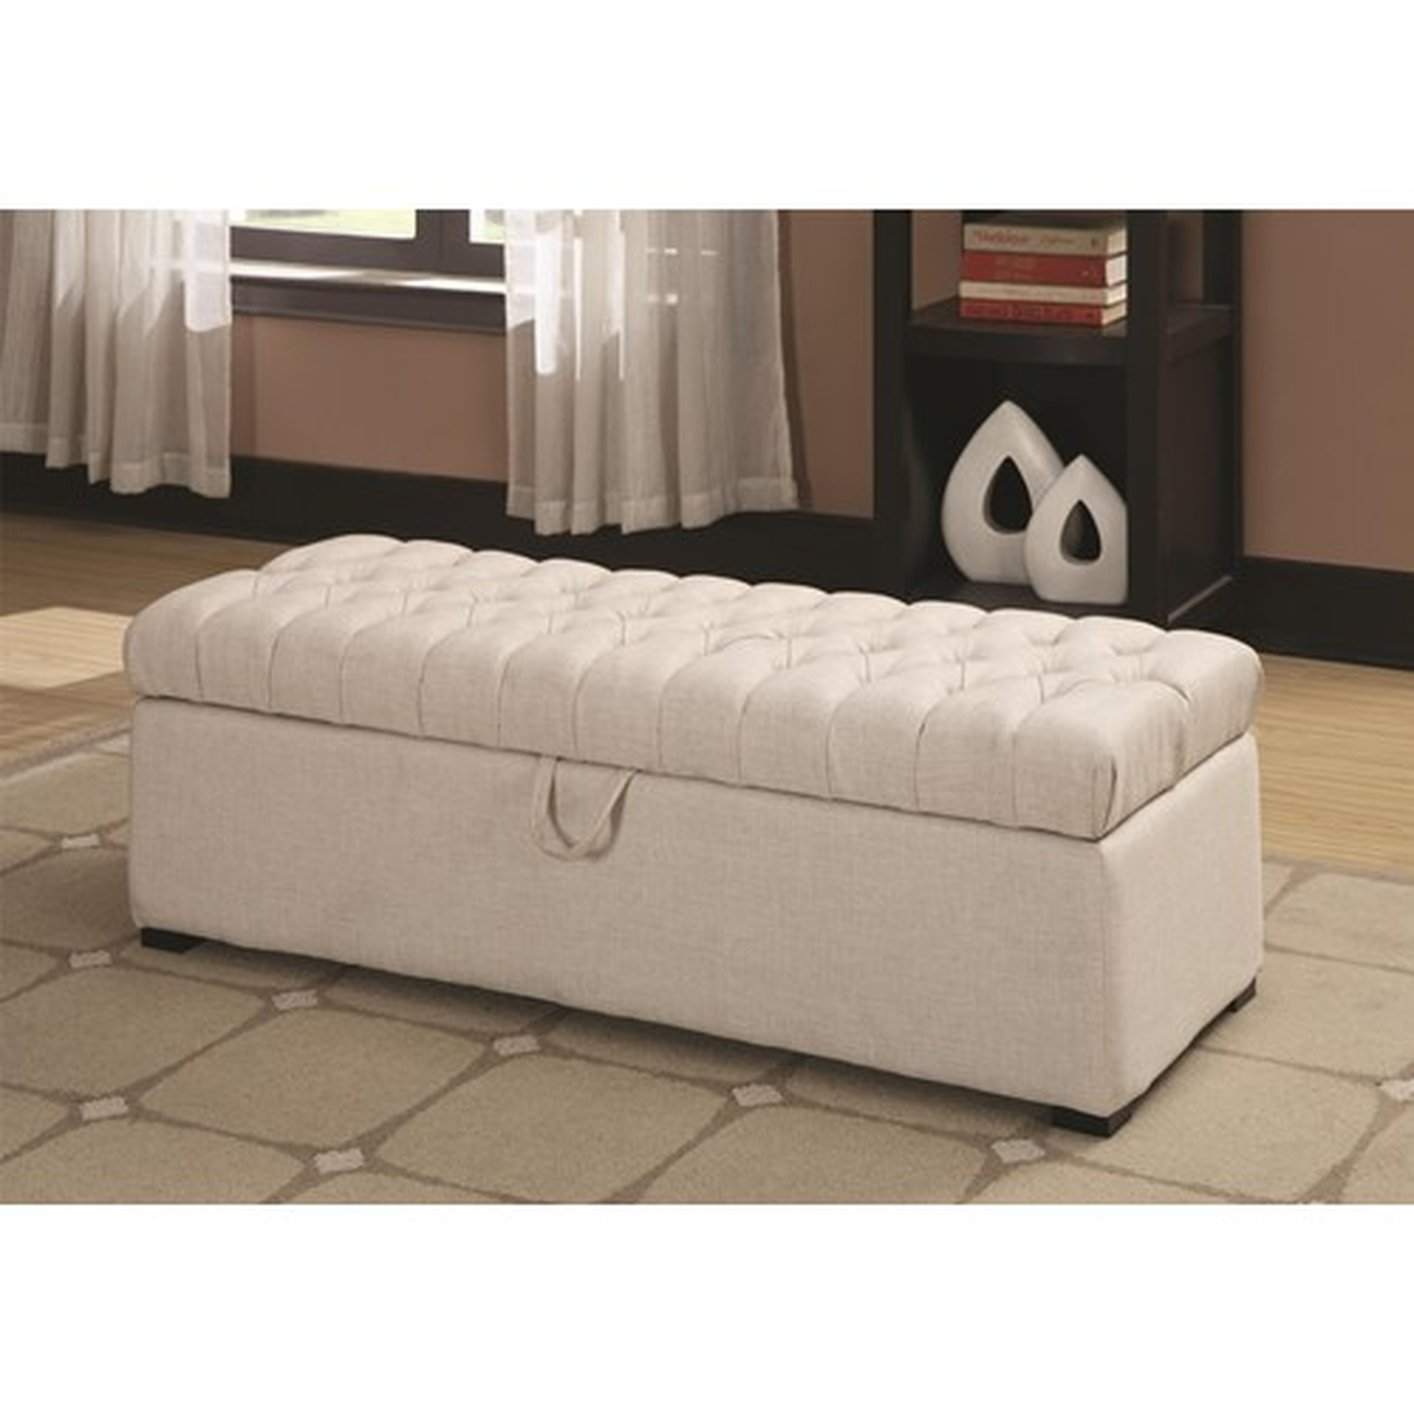 White Fabric Storage Bench Steal A Sofa Furniture Outlet Los Angeles Ca